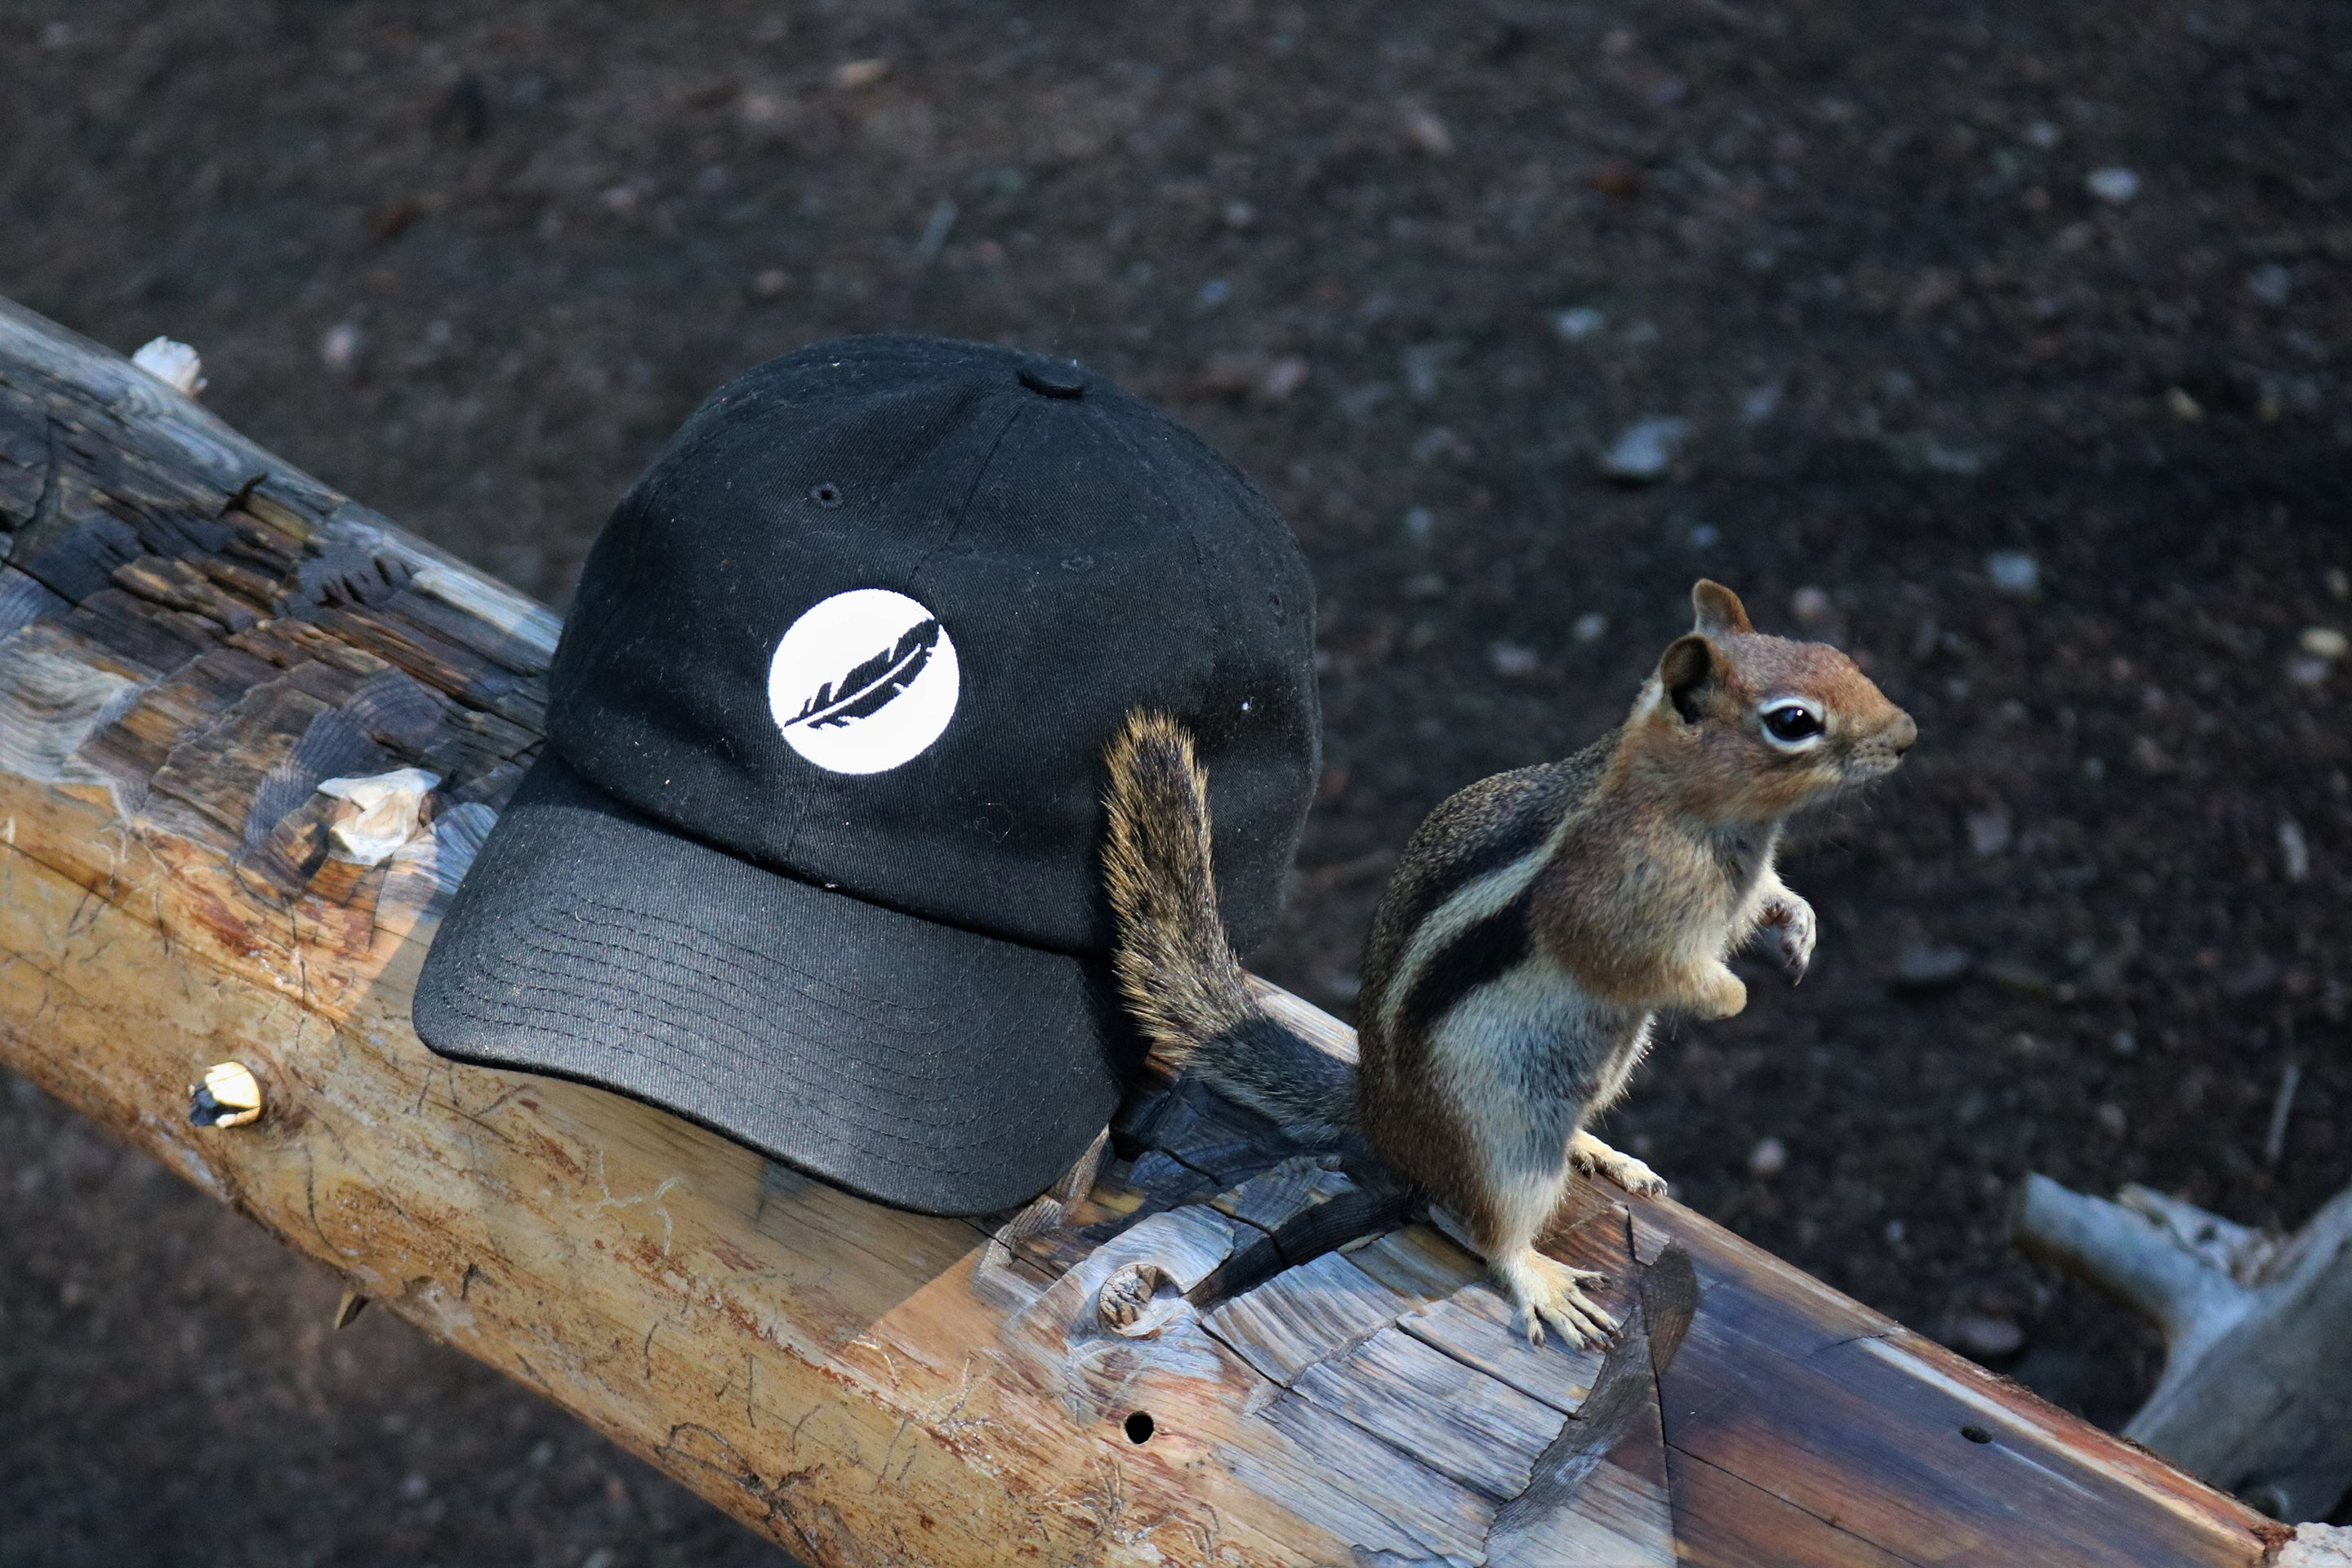 Squirrel Sitting right next to Avian Hat